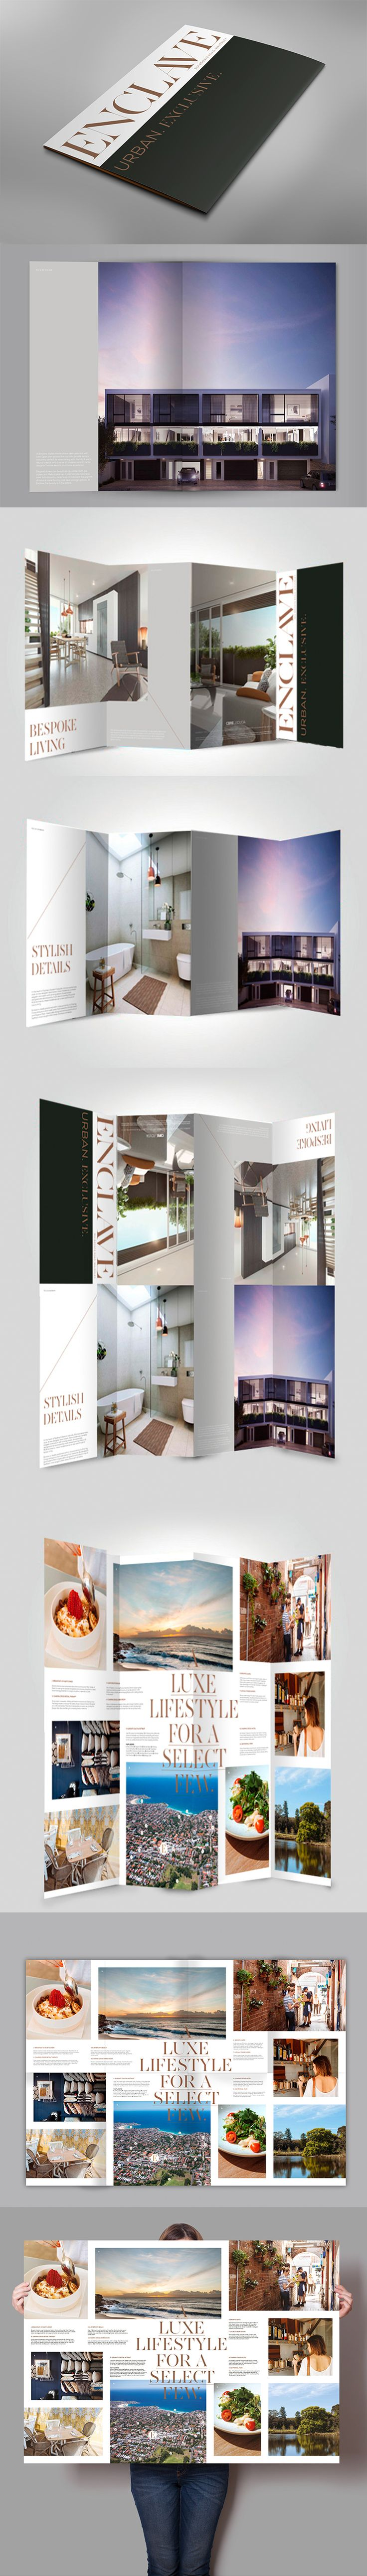 Made created a unique folding brochure for Enclave, a new property development in Sydney's exclusive eastern suburbs. The brochure transforms from an A4 book to an eye-catching A1 poster.  madeagency sydney graphic graphicdesign brochure poster creative inspiration realestate estate